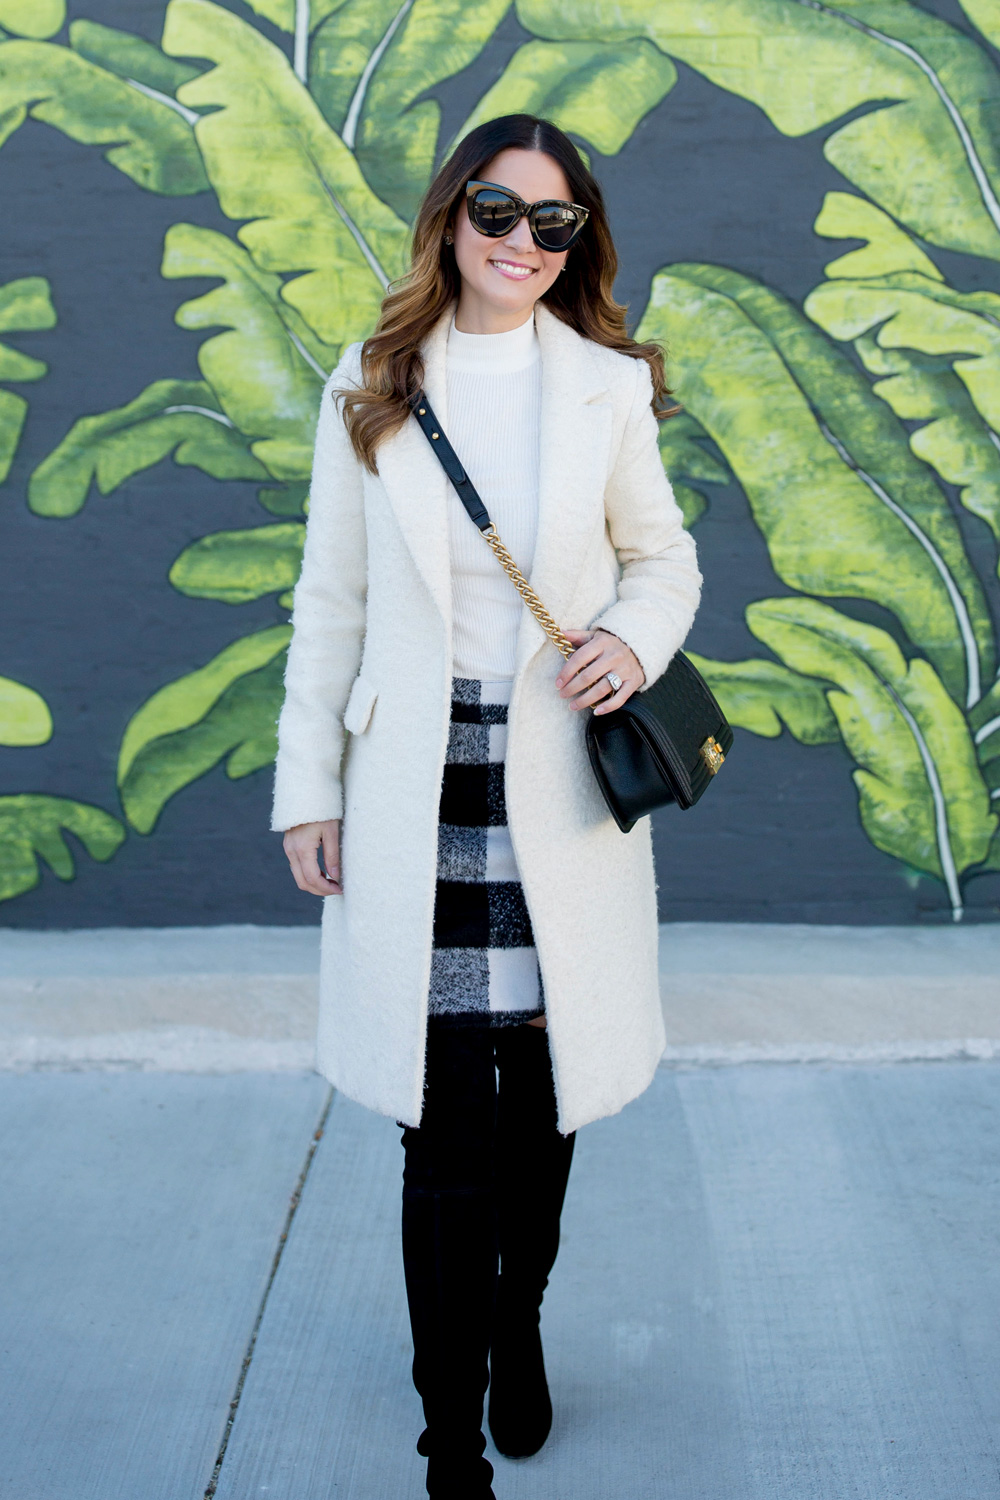 Jennifer Lake Style Charade in an ASOS black white check skirt, ivory coat, Chanel Boy Bag, and Stuart Weitzman Highland boots at a Chicago palm leaf mural